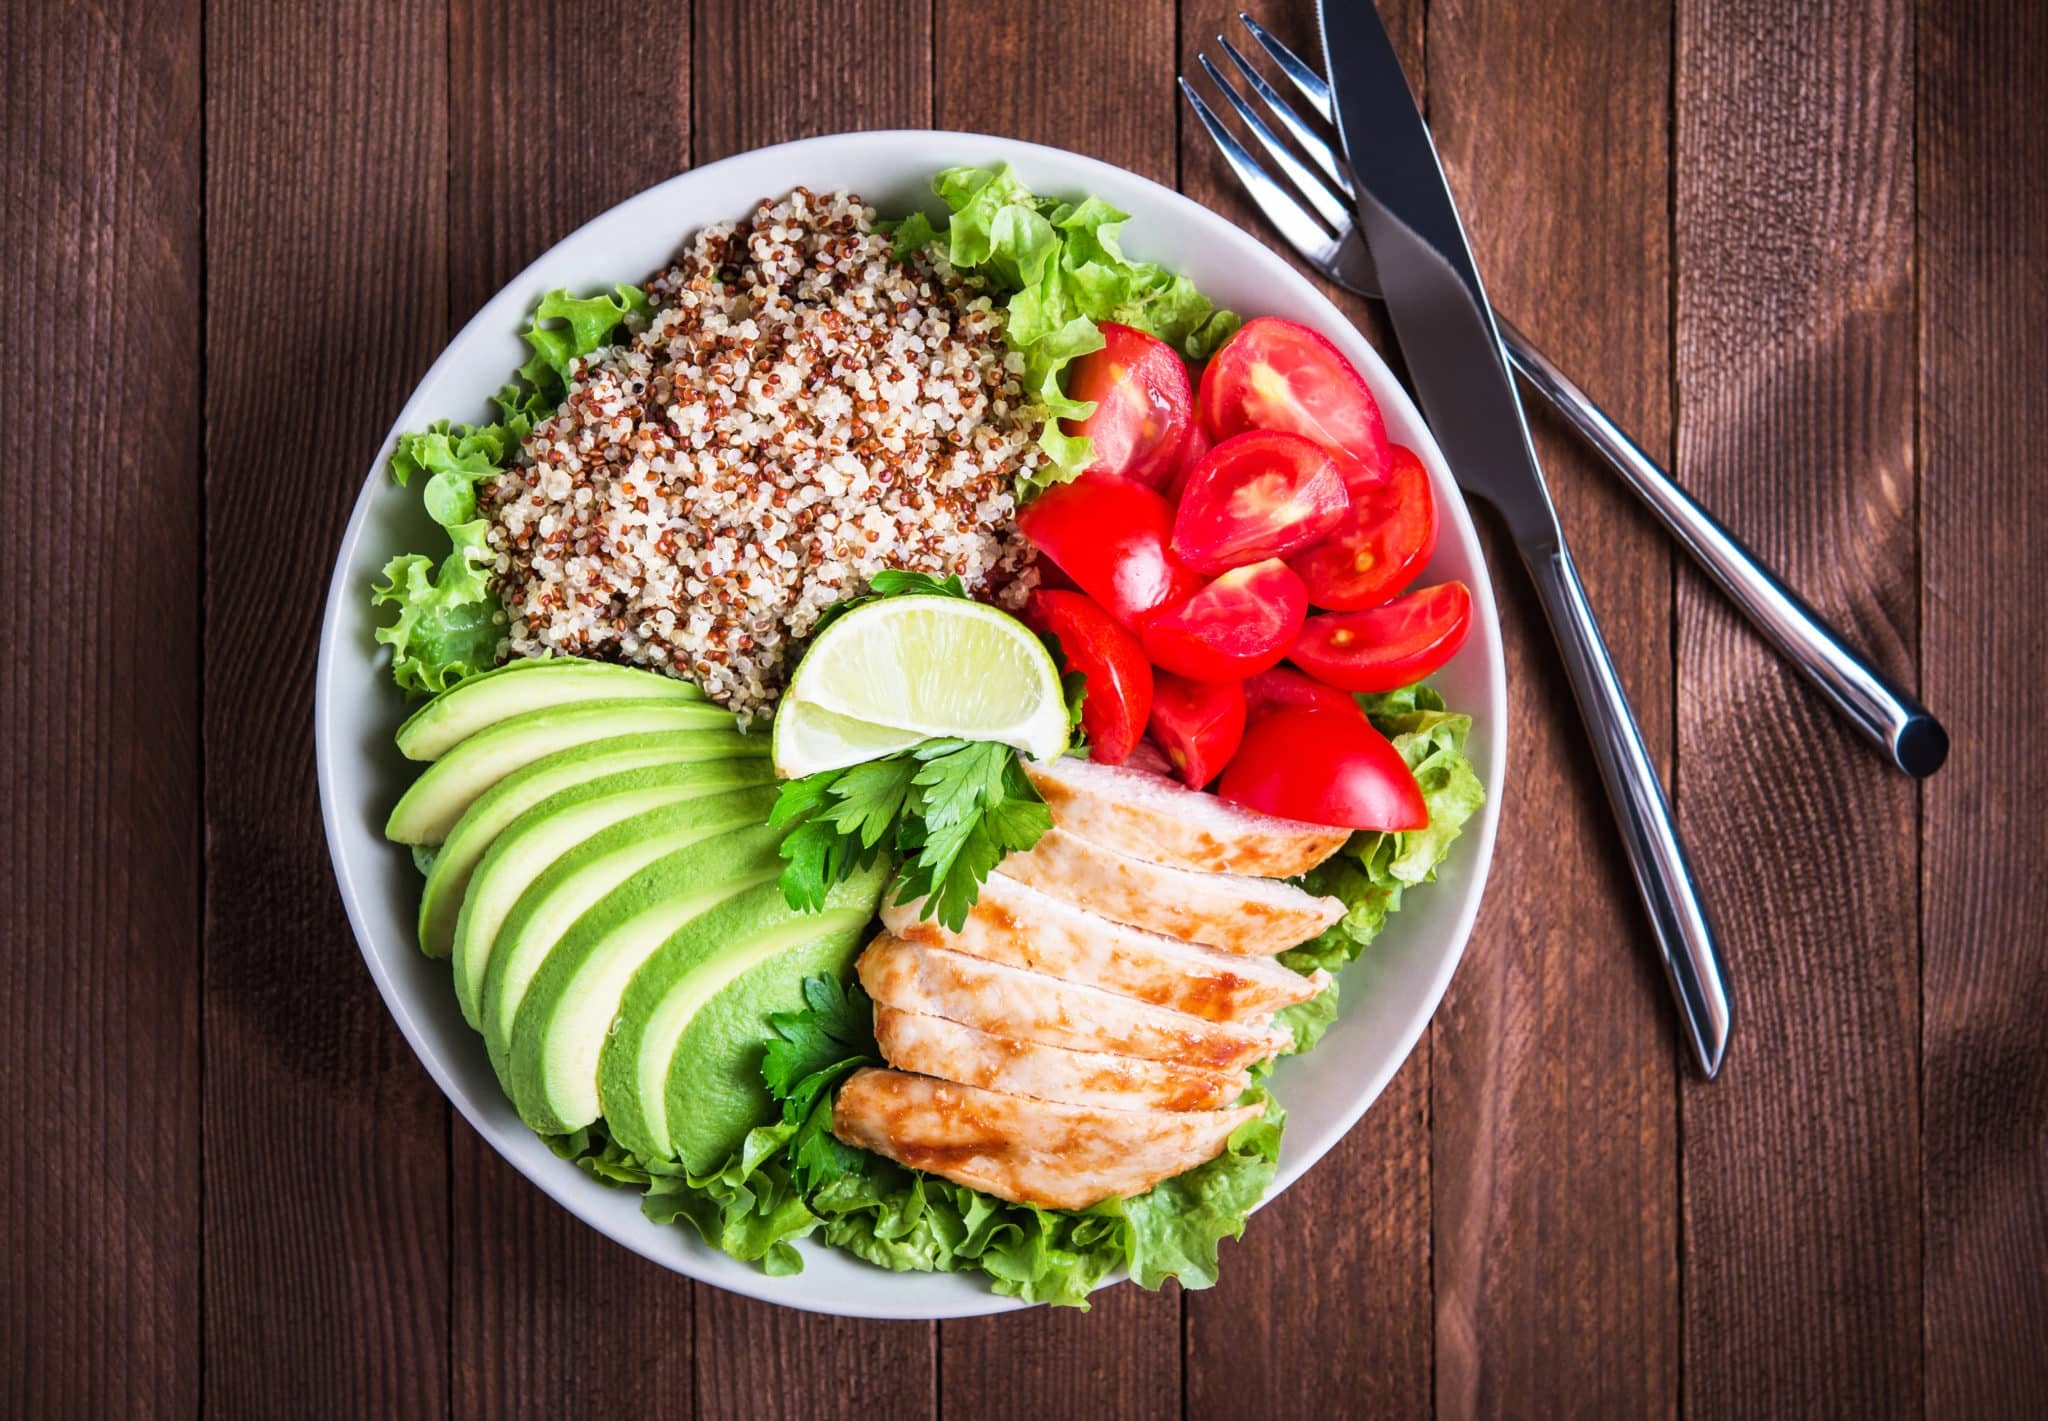 Try this healthy lunch option to lose belly fat.